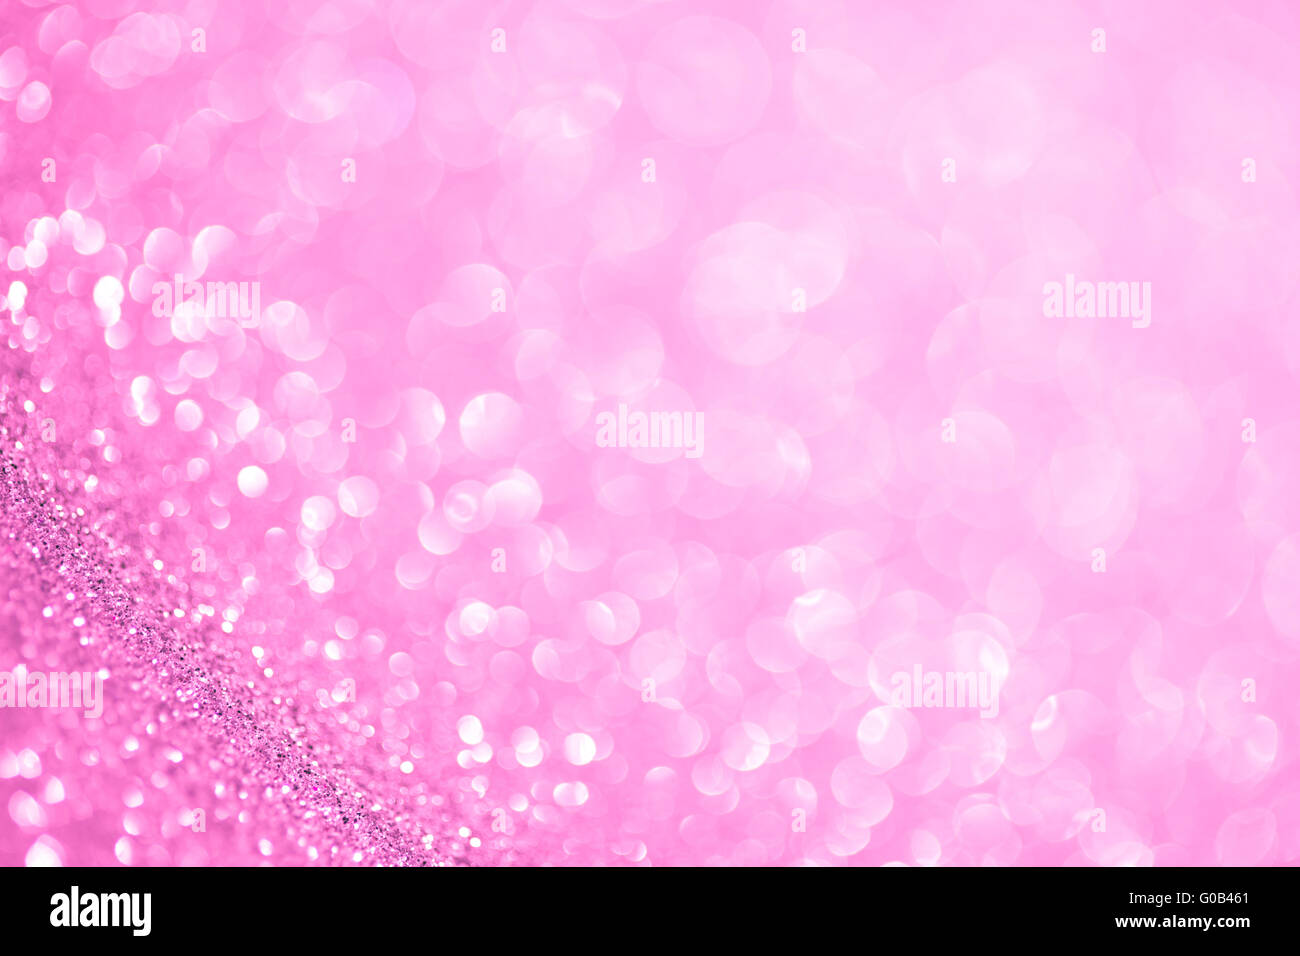 Beautiful festive abstract background with a small depth of field - Stock Image